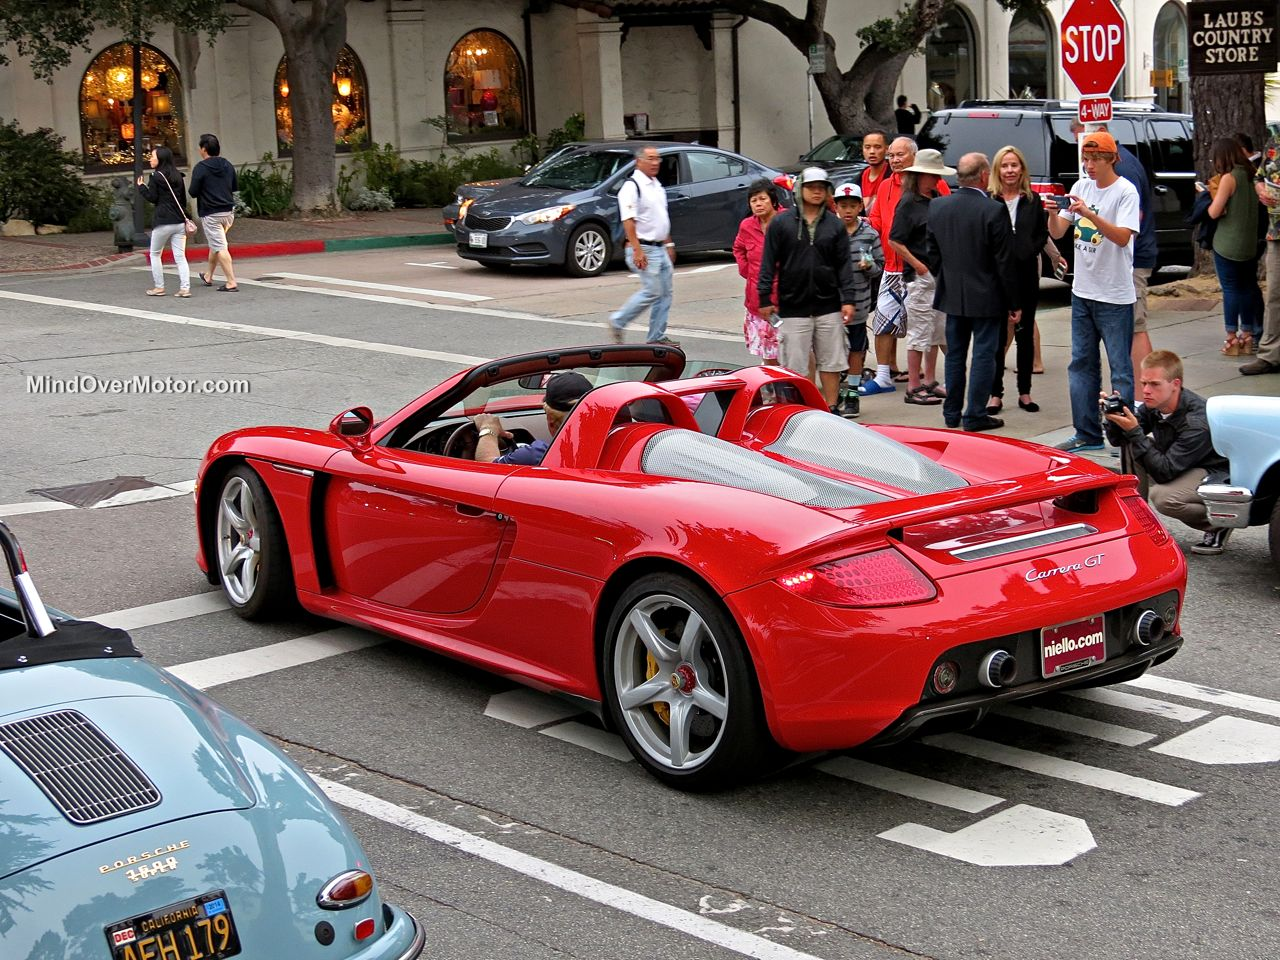 Porsche Carrera GT in Carmel rear